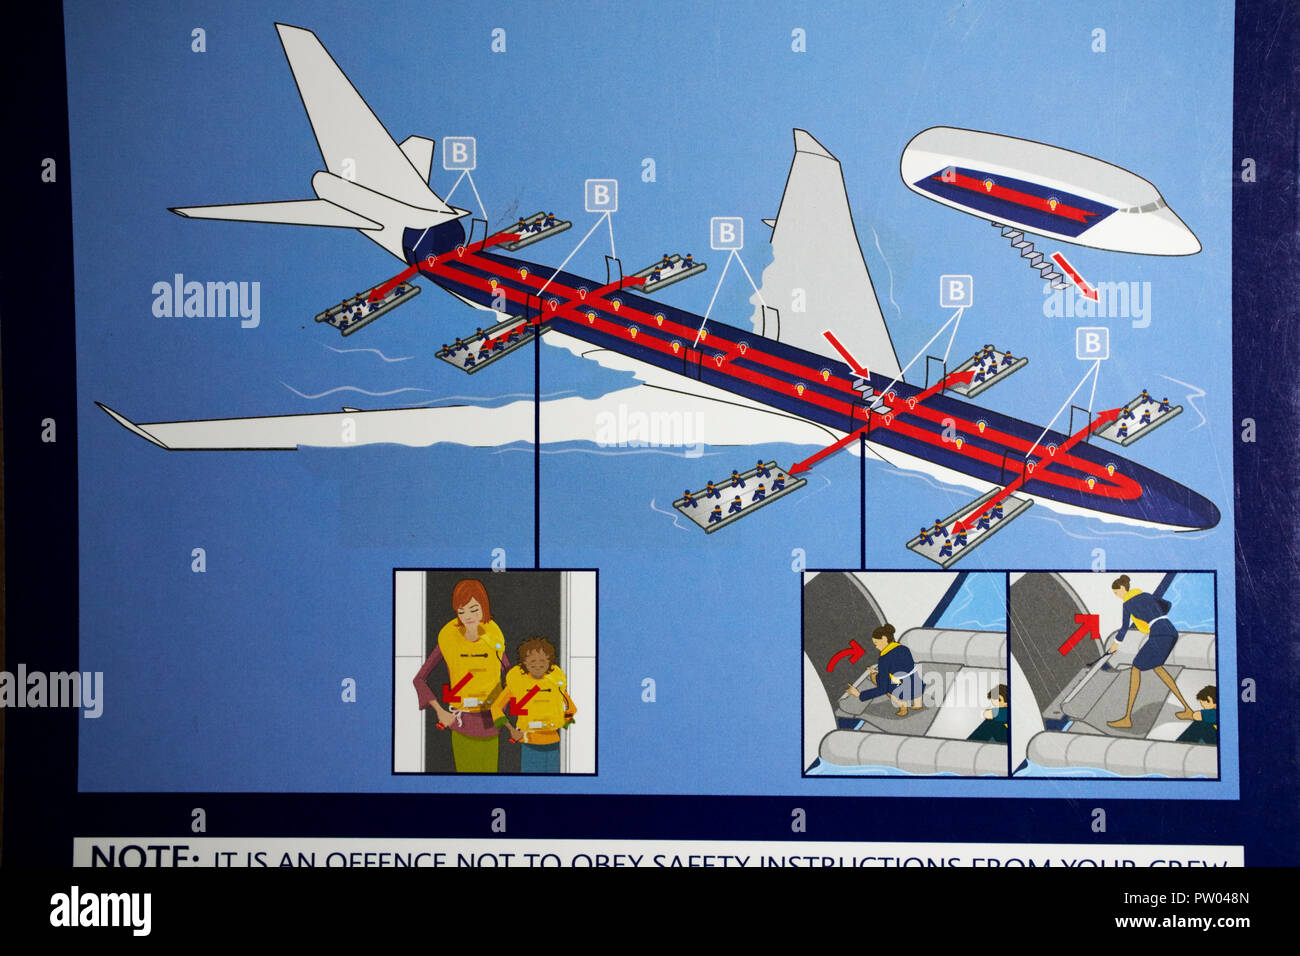 landing on water emergency exit slide location Safety on Board british airways flight safety card information - Stock Image